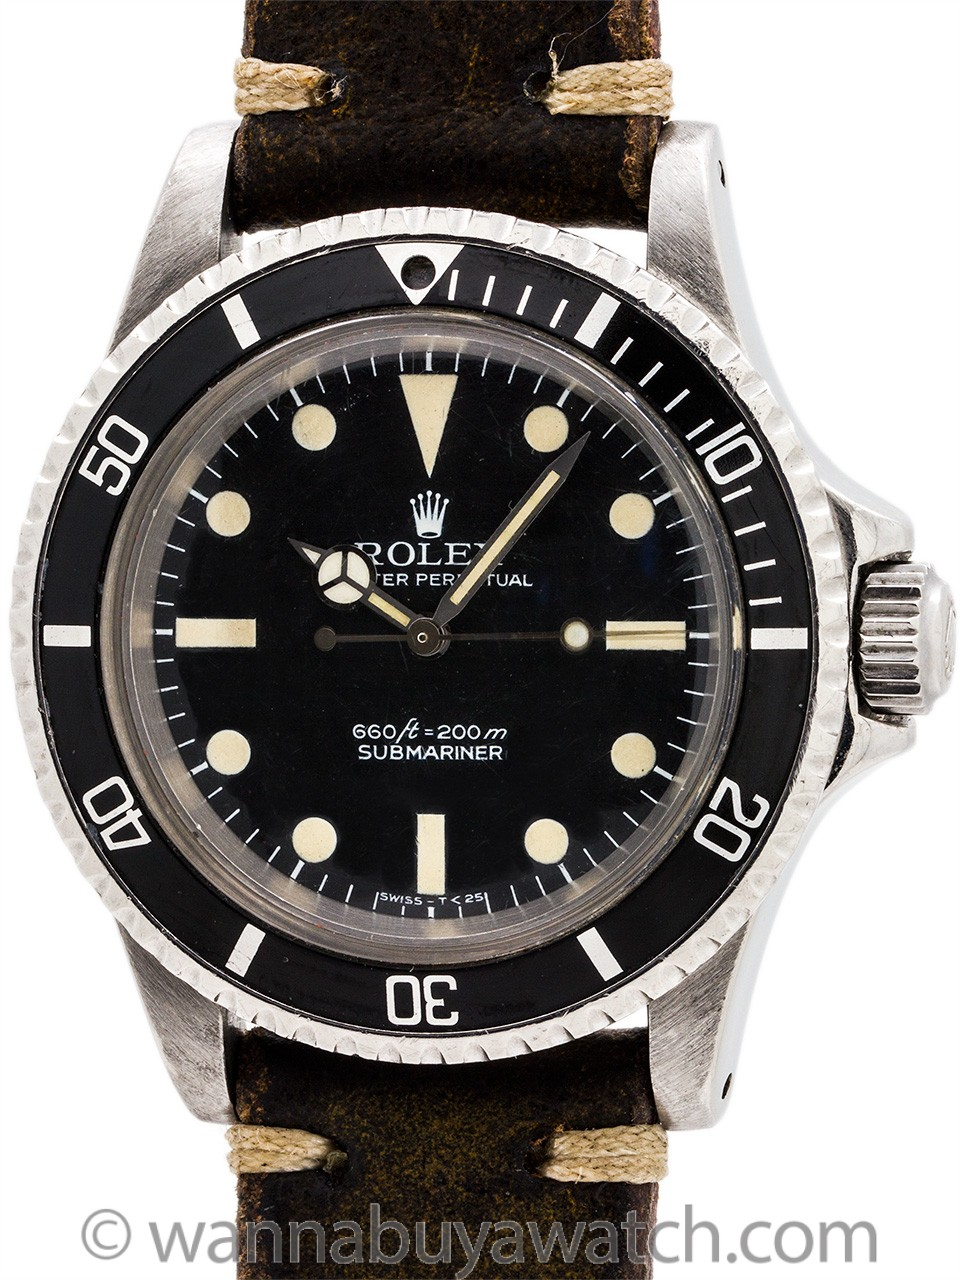 Rolex Submariner ref 5513 Stainless Steel circa 1978